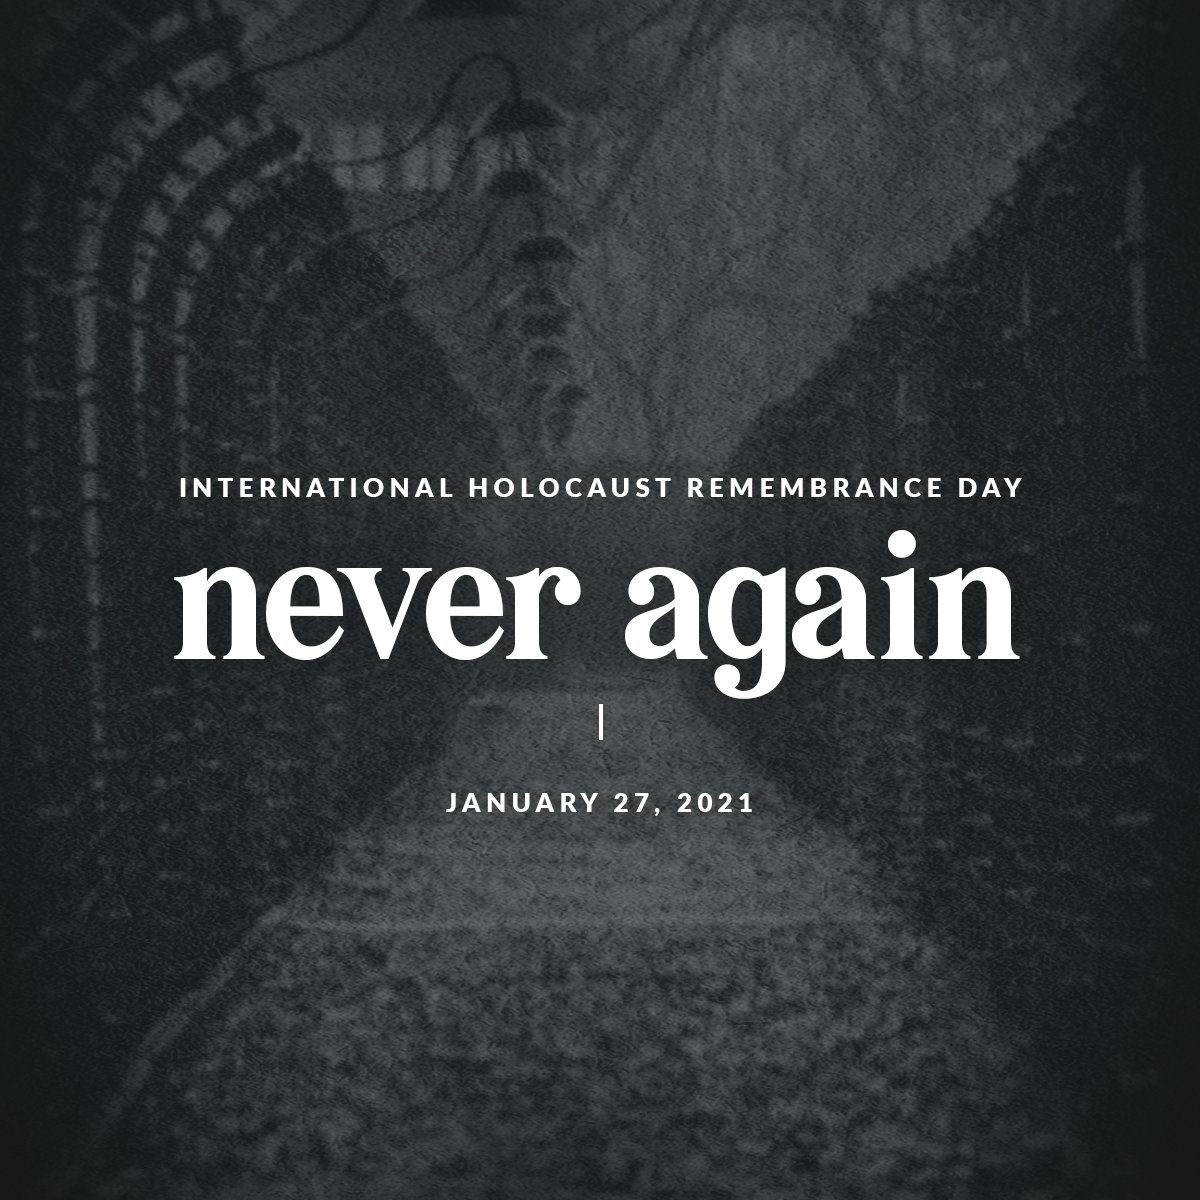 76 years ago, thousands were liberated from Auschwitz-Birkenau. Today, on Holocaust Remembrance Day, we honor the millions of lives lost. #neveragain